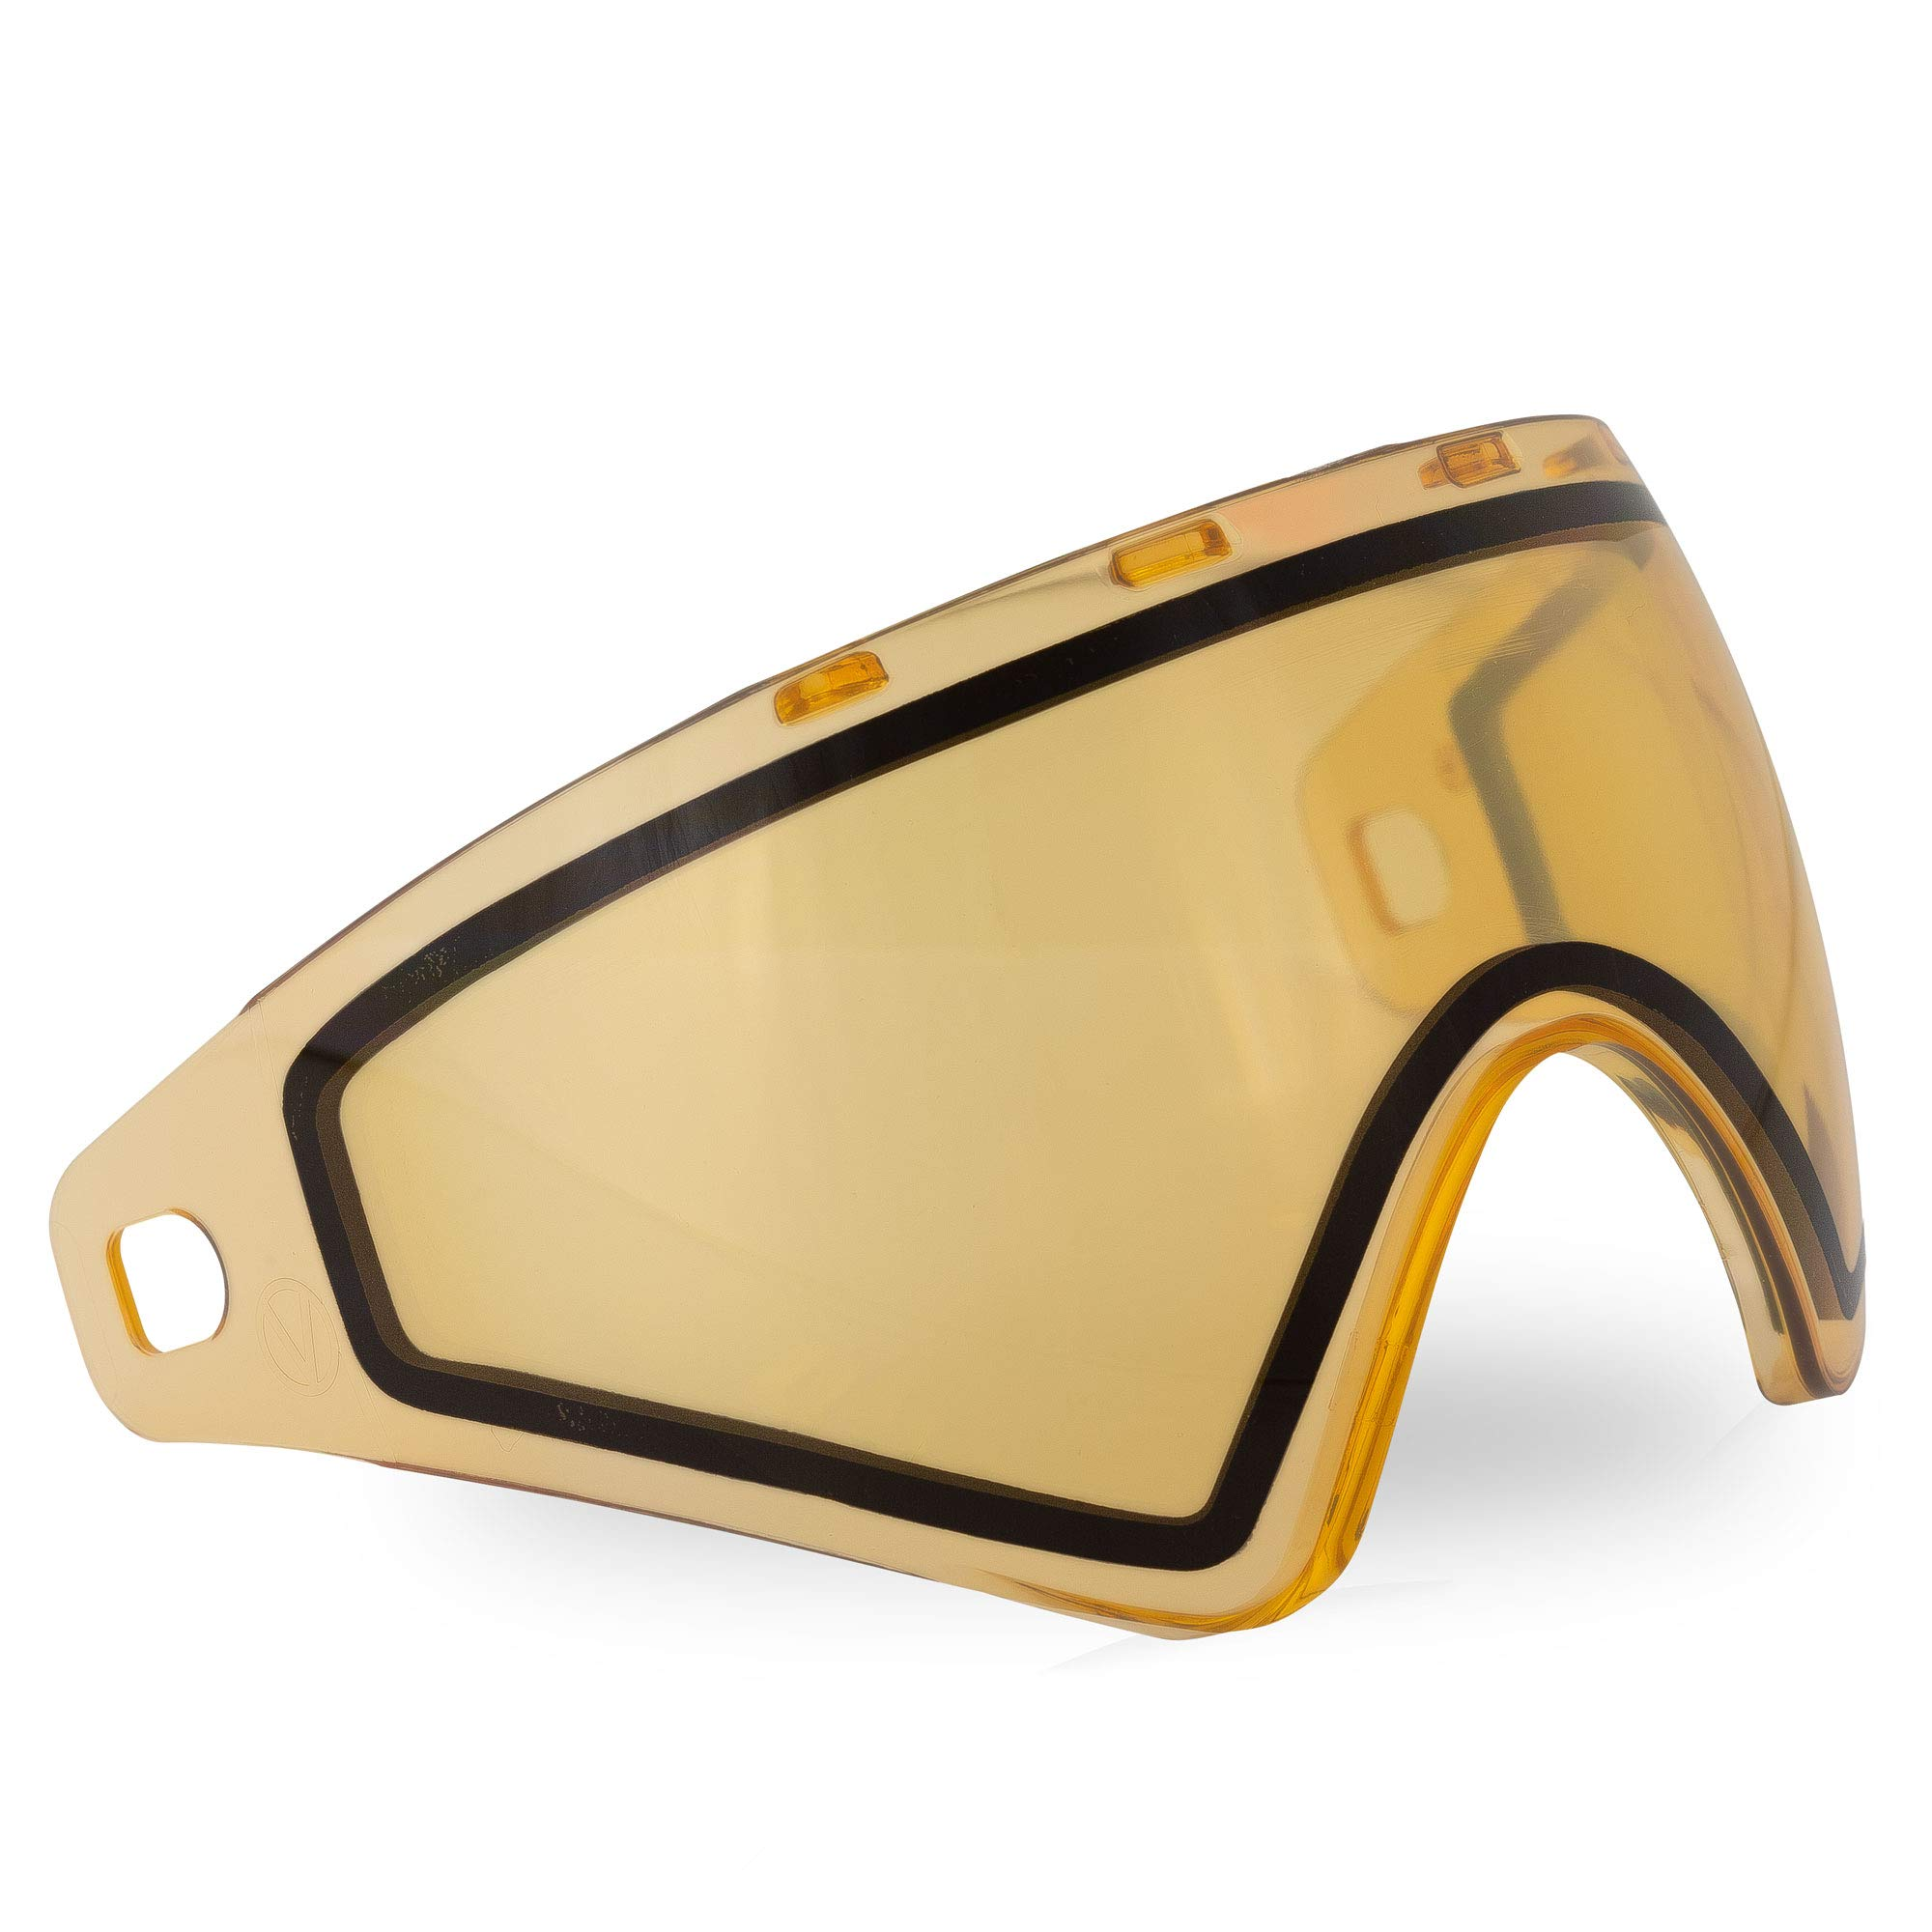 Bunker Kings CMD/Virtue VIO Thermal Paintball Goggle/Mask Replacement Lens - HD by Bnkr Kings